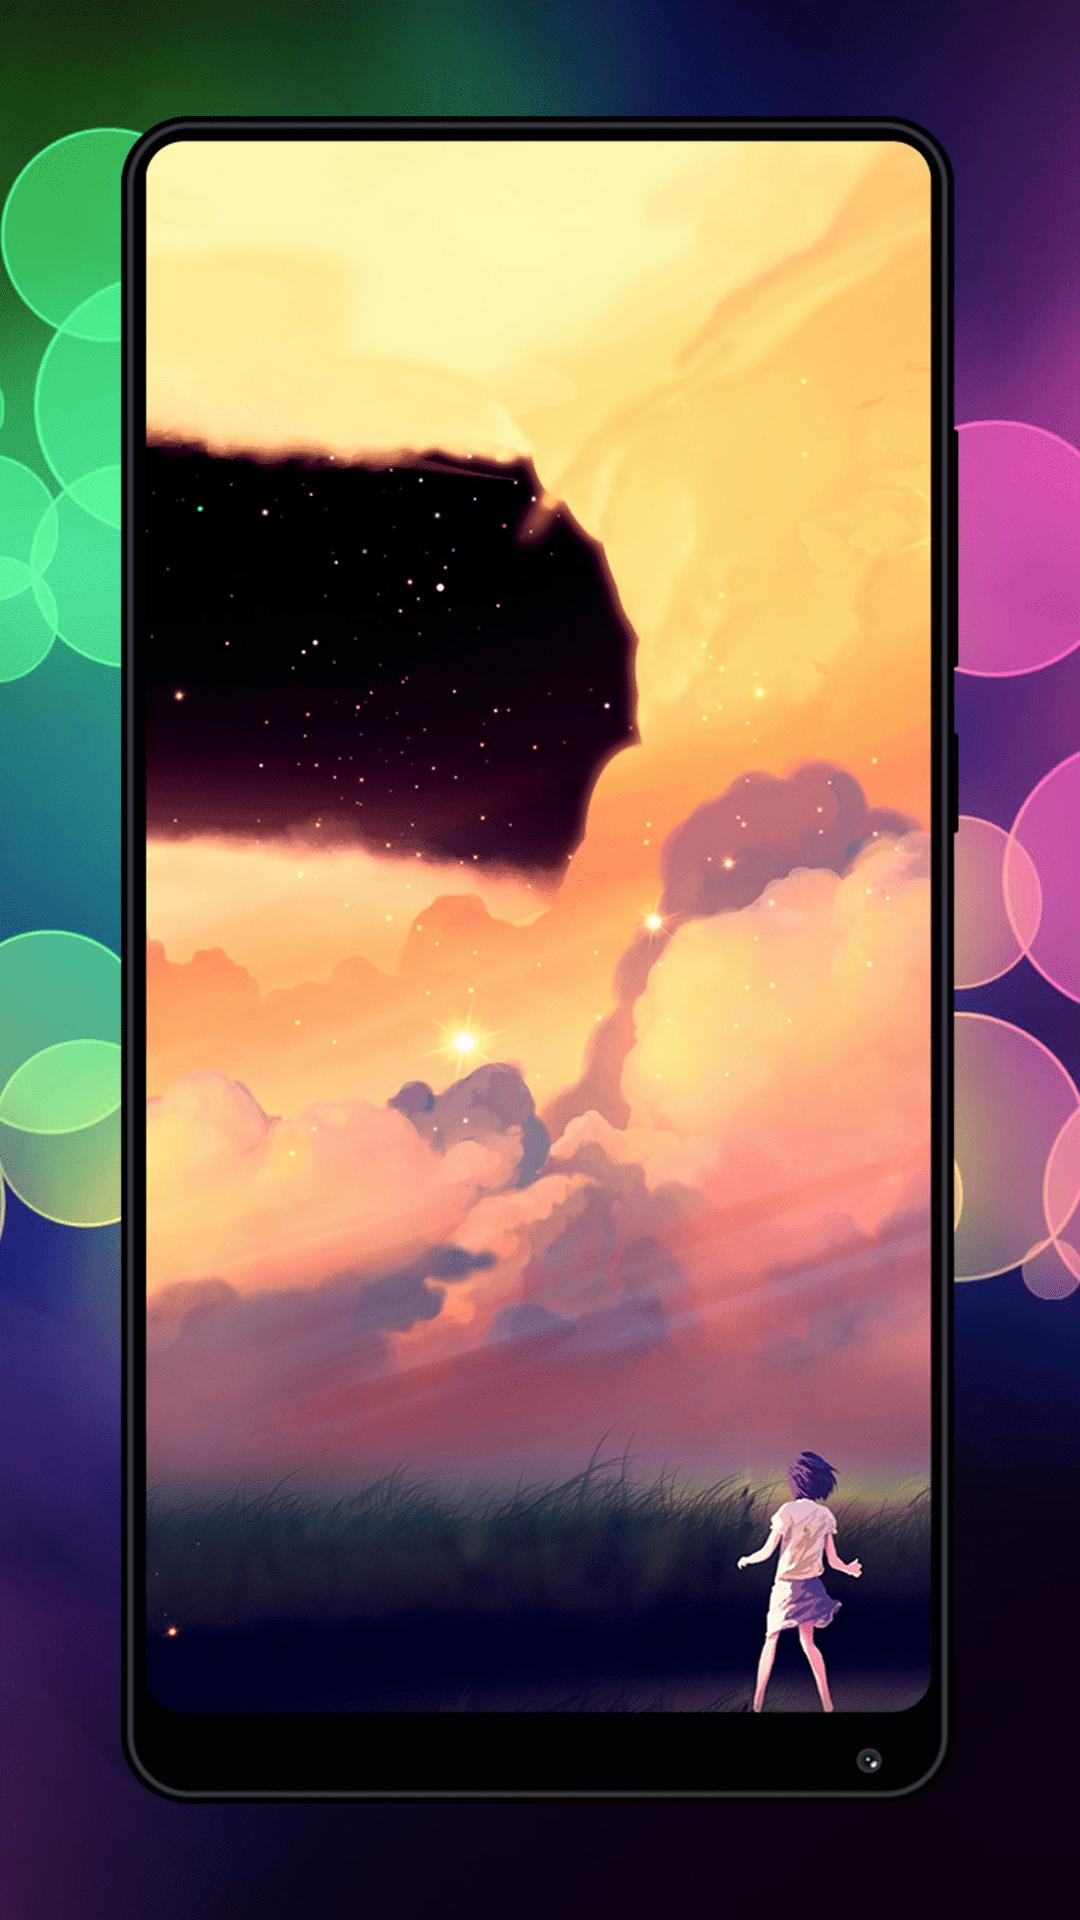 Anime Wallpapers 4k Ultra Hd For Android Apk Download